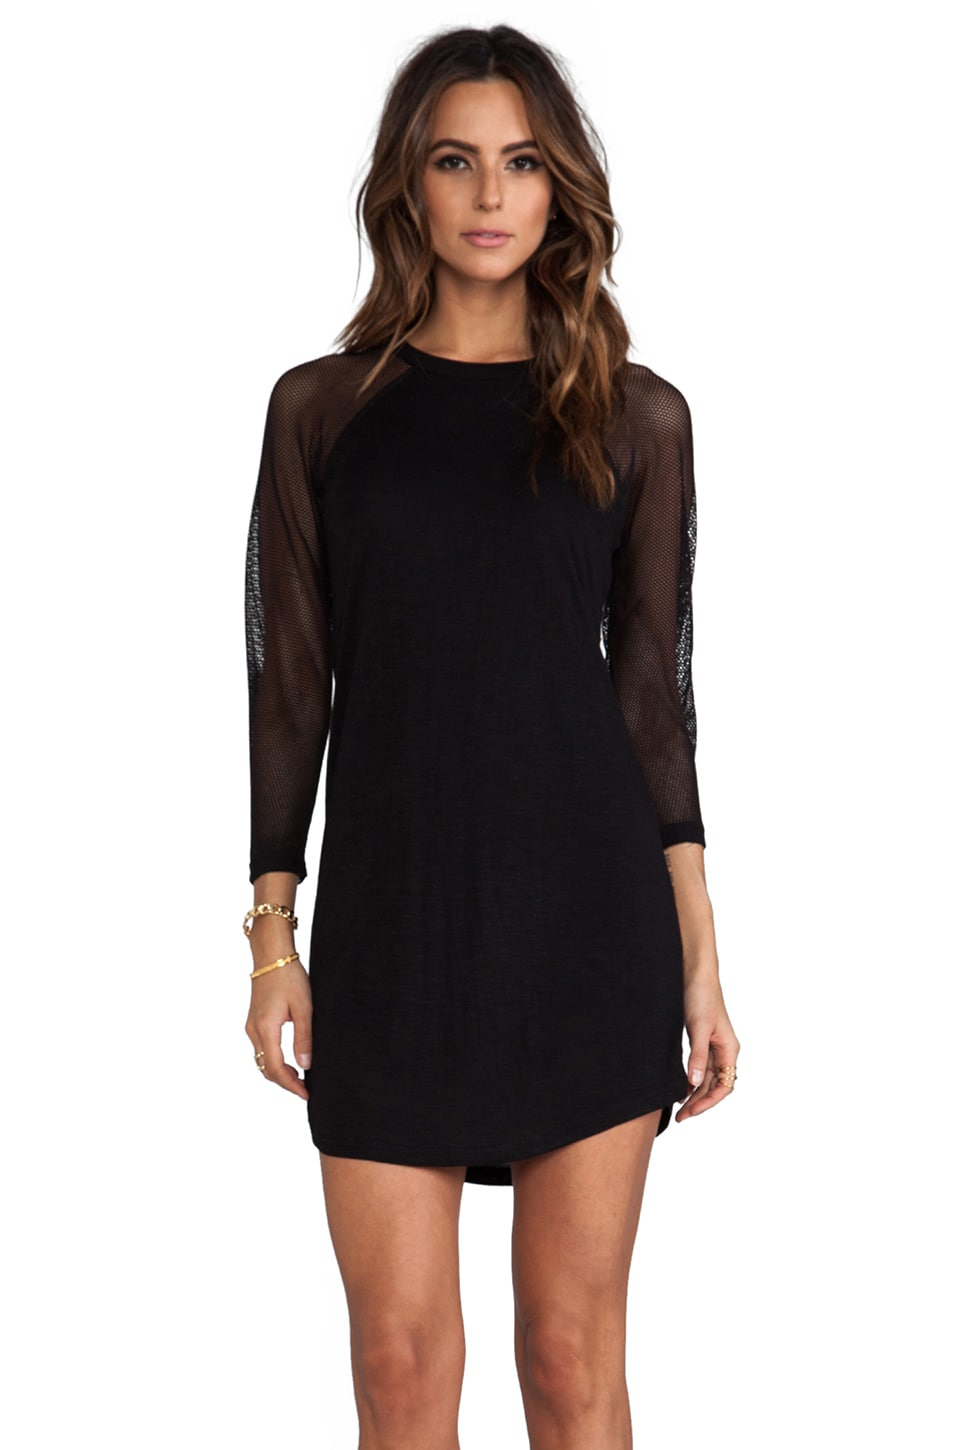 Pencey Standard Mesh Sleeve Baseball Mini Dress in Black